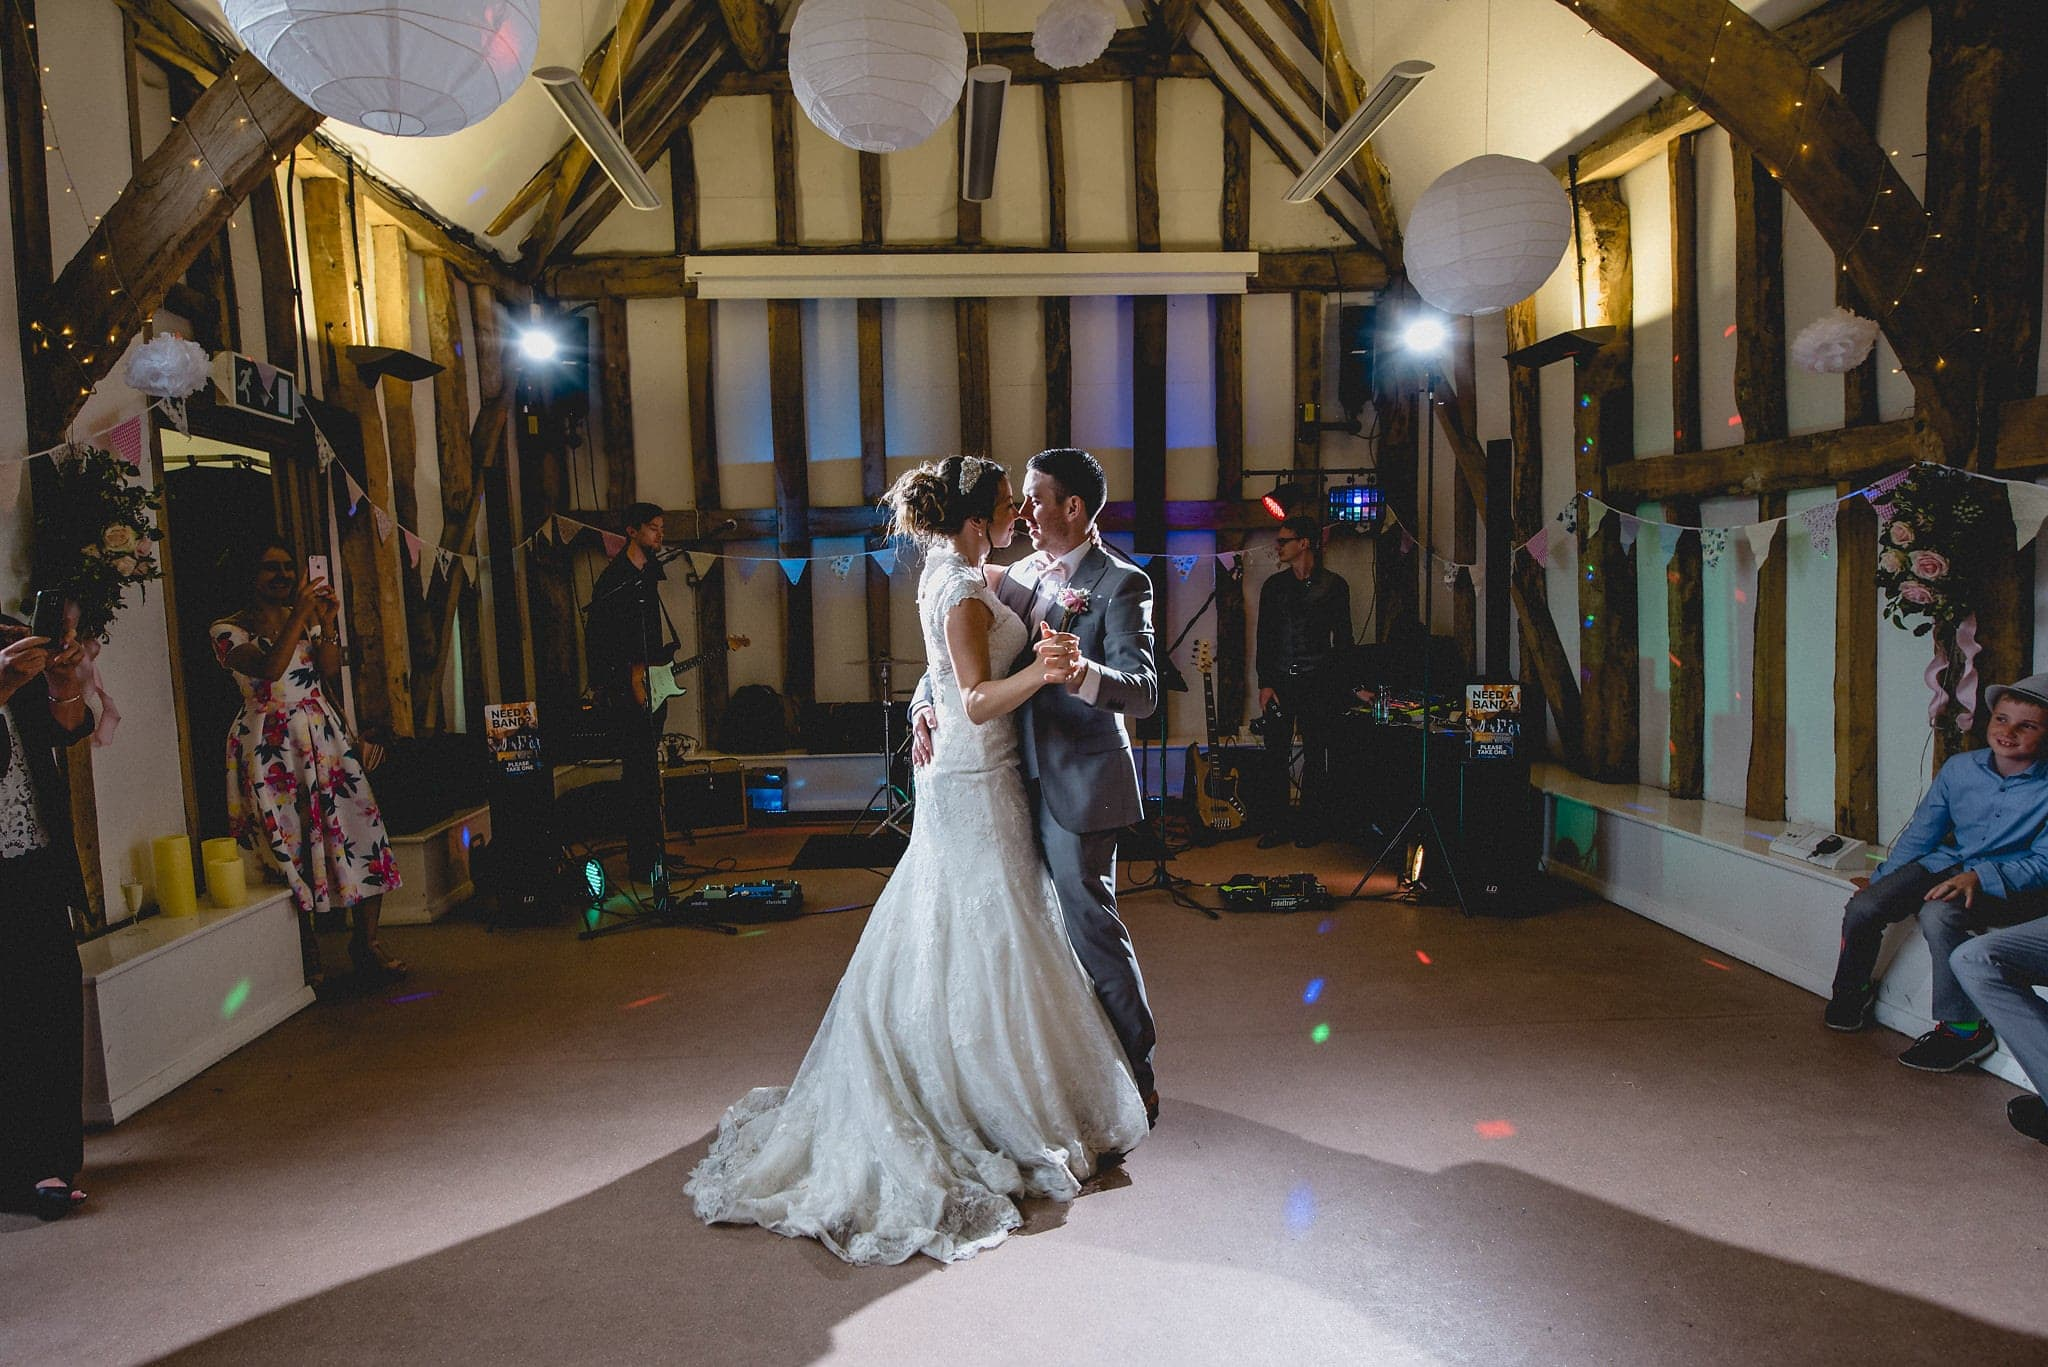 Bride and groom on dancefloor